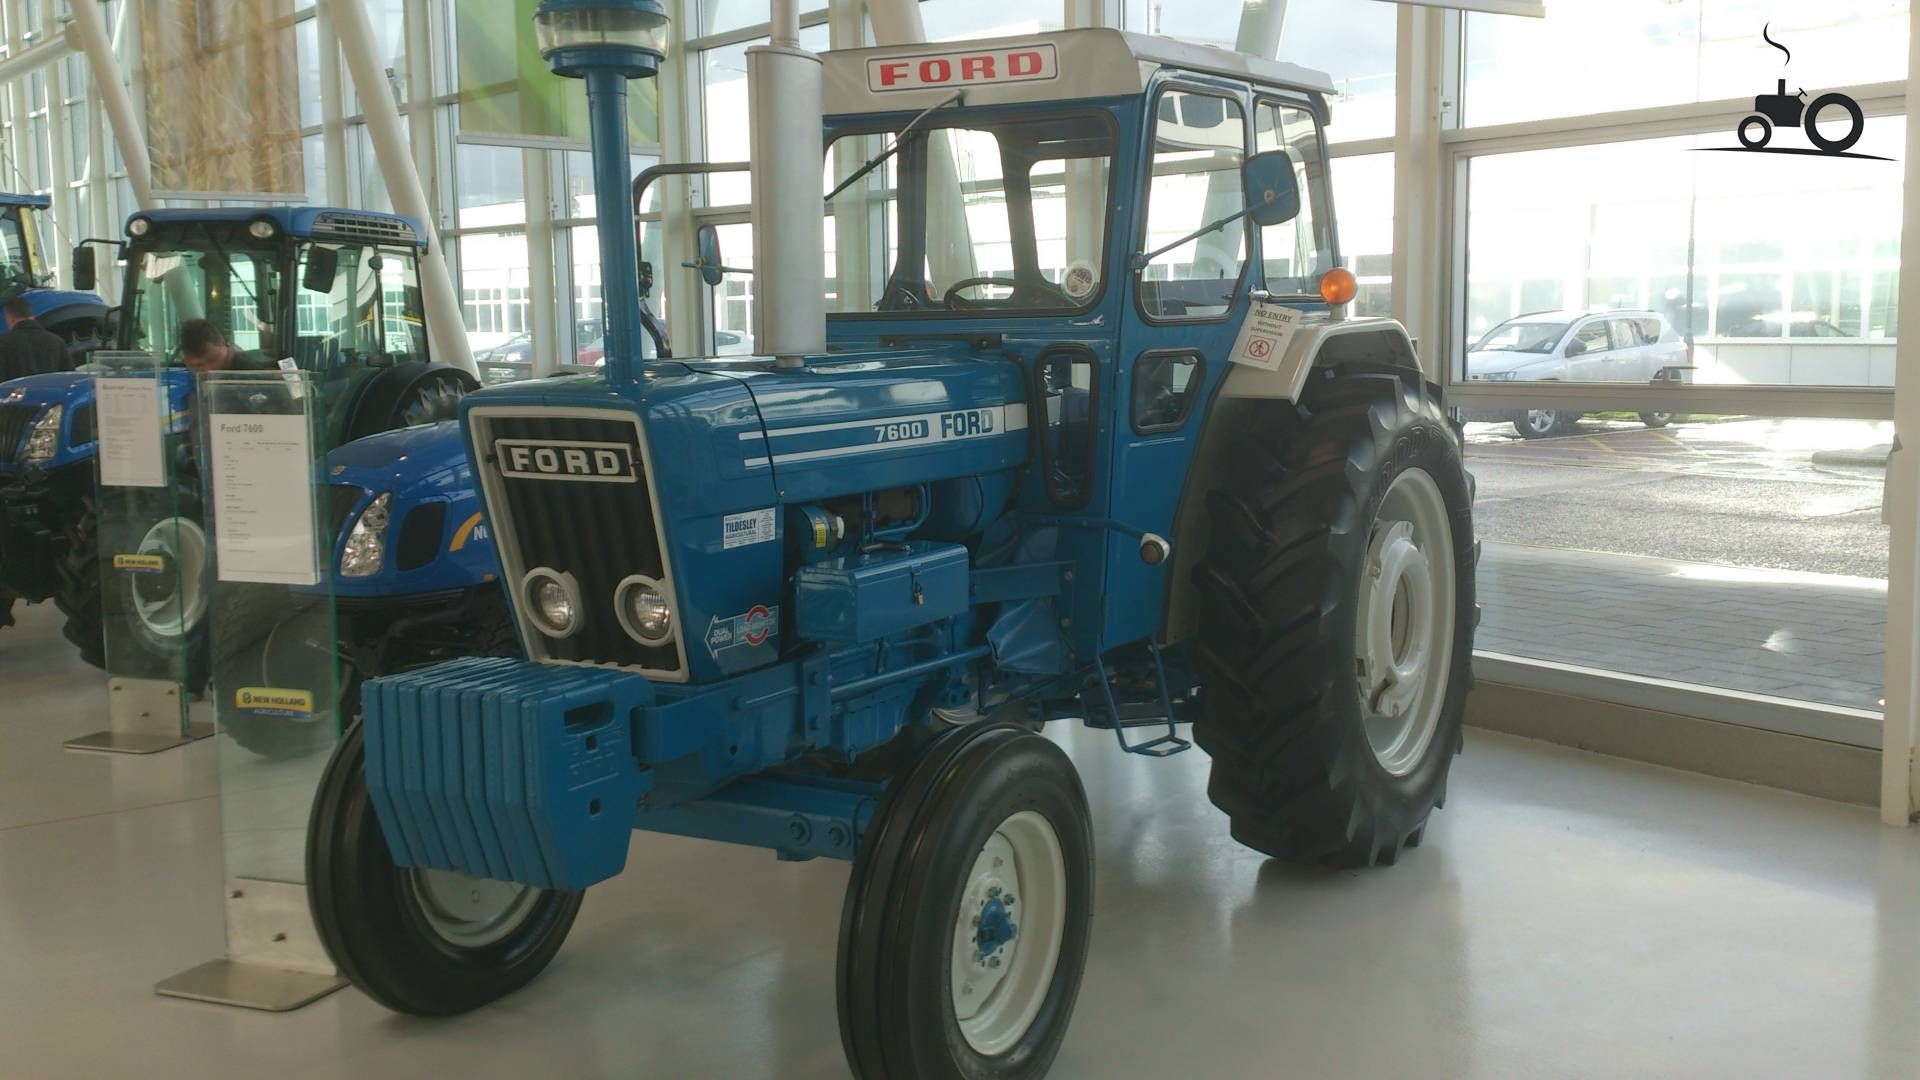 Ford 7600 Specs : Ford specs and data everything about the